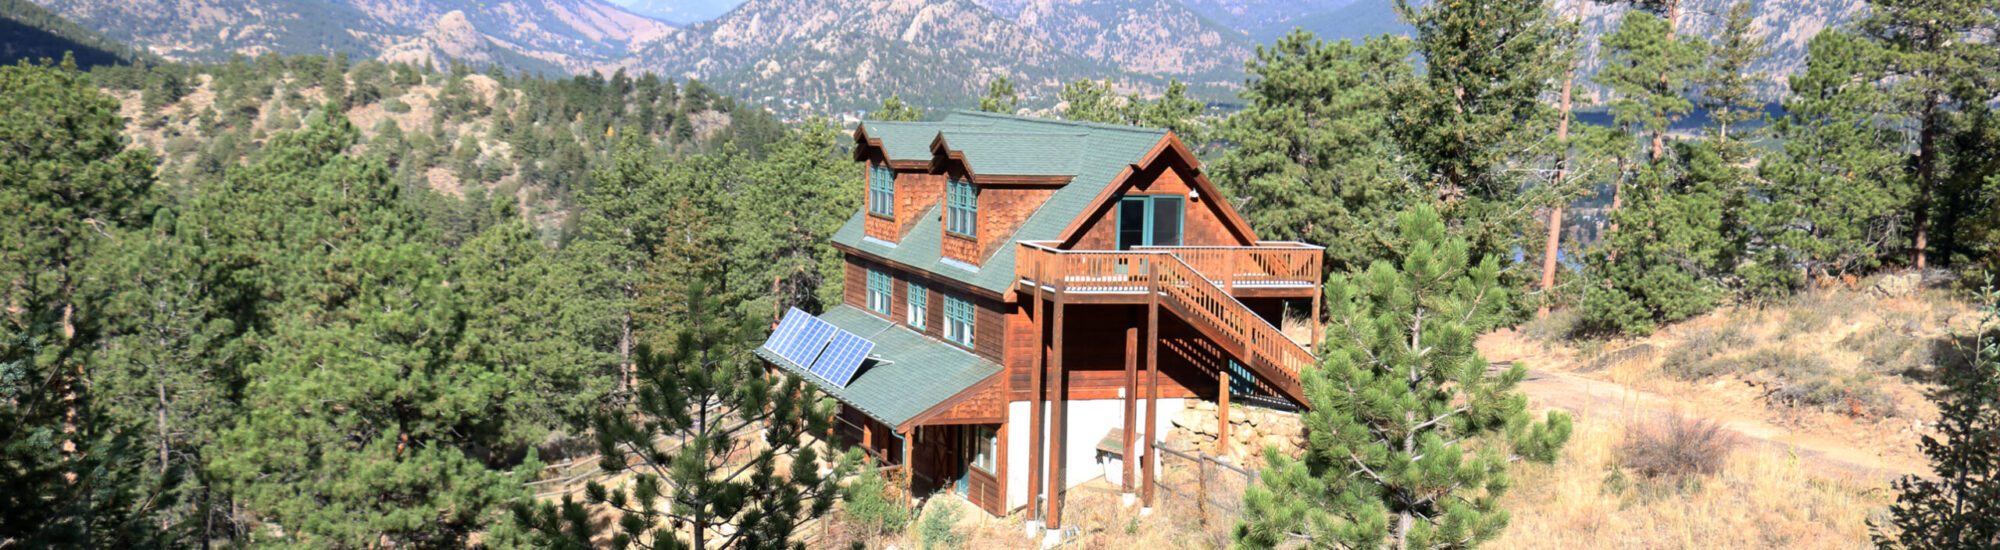 Off-grid Carriage House